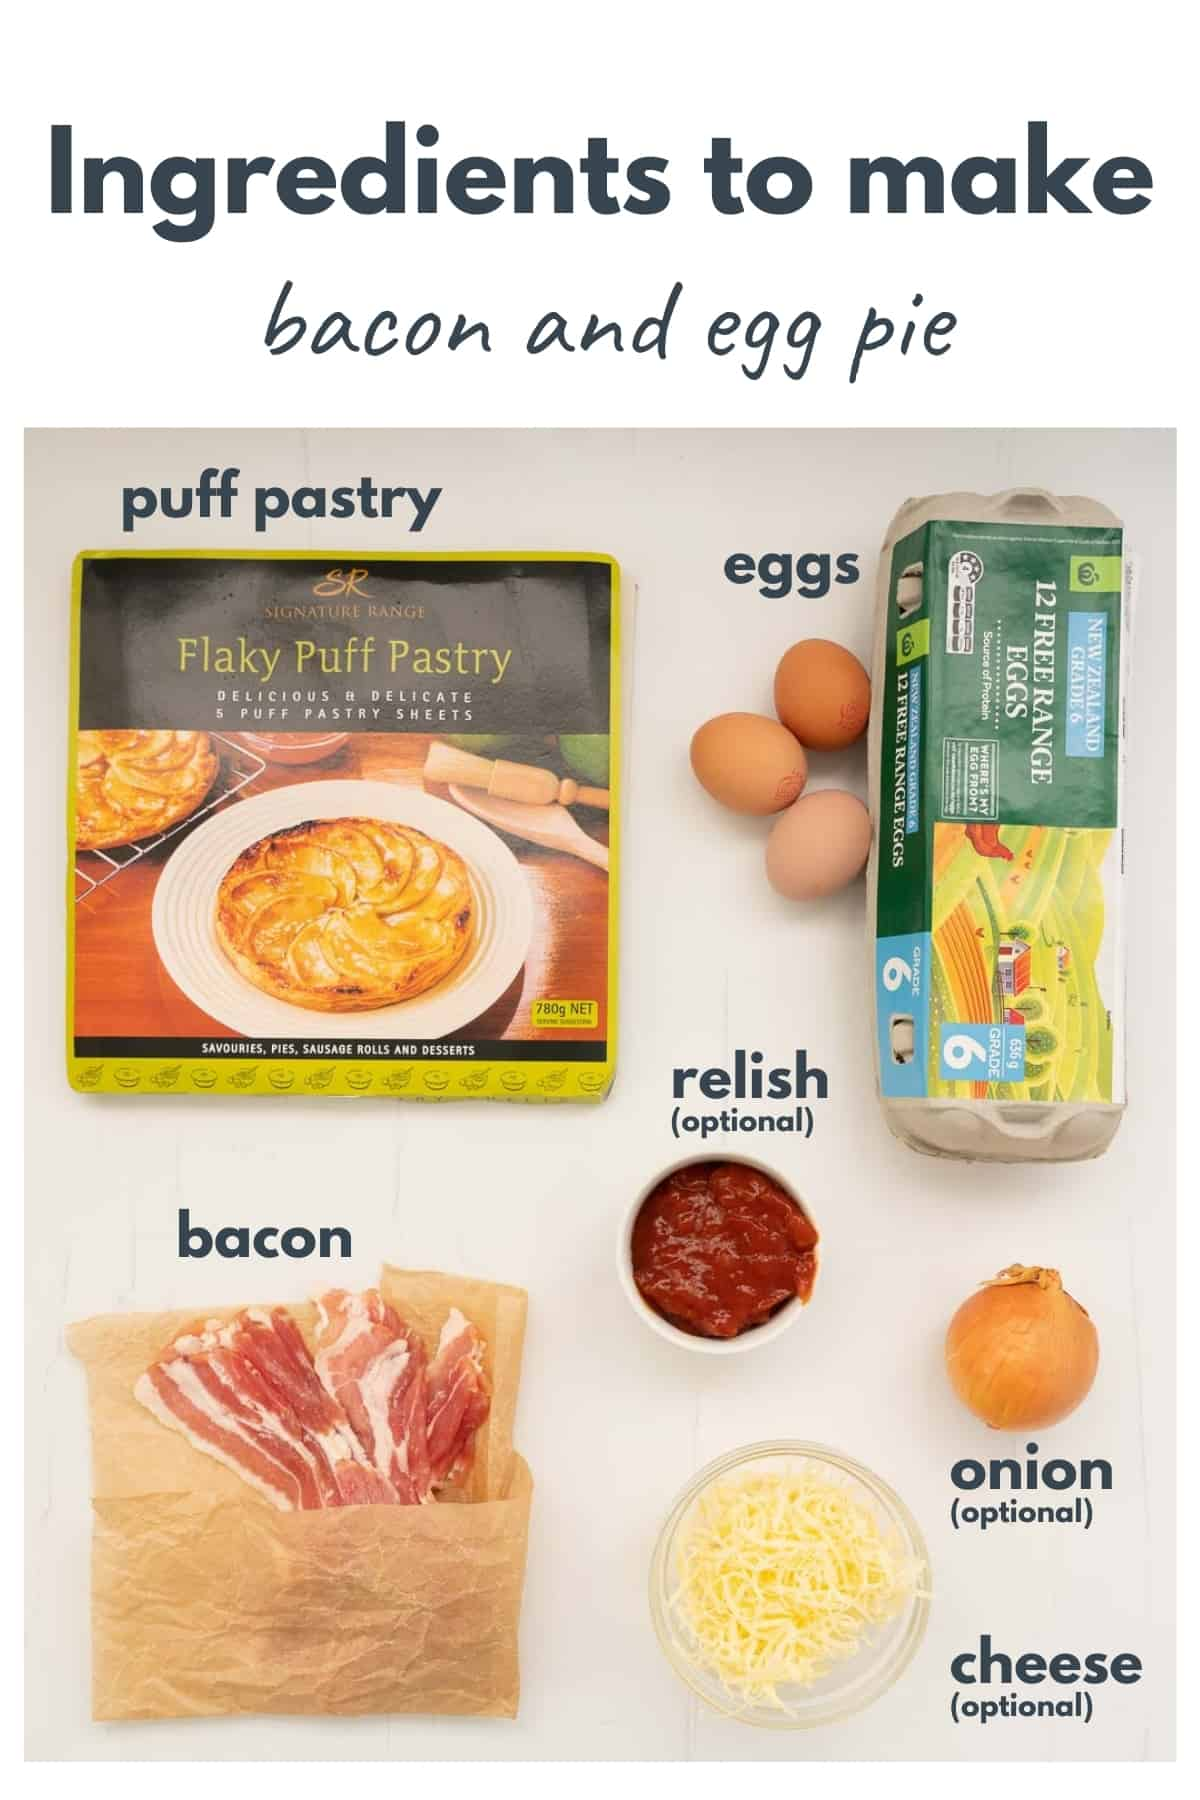 The ingredients to make bacon and egg pie laid out on a bench top with text overlay.